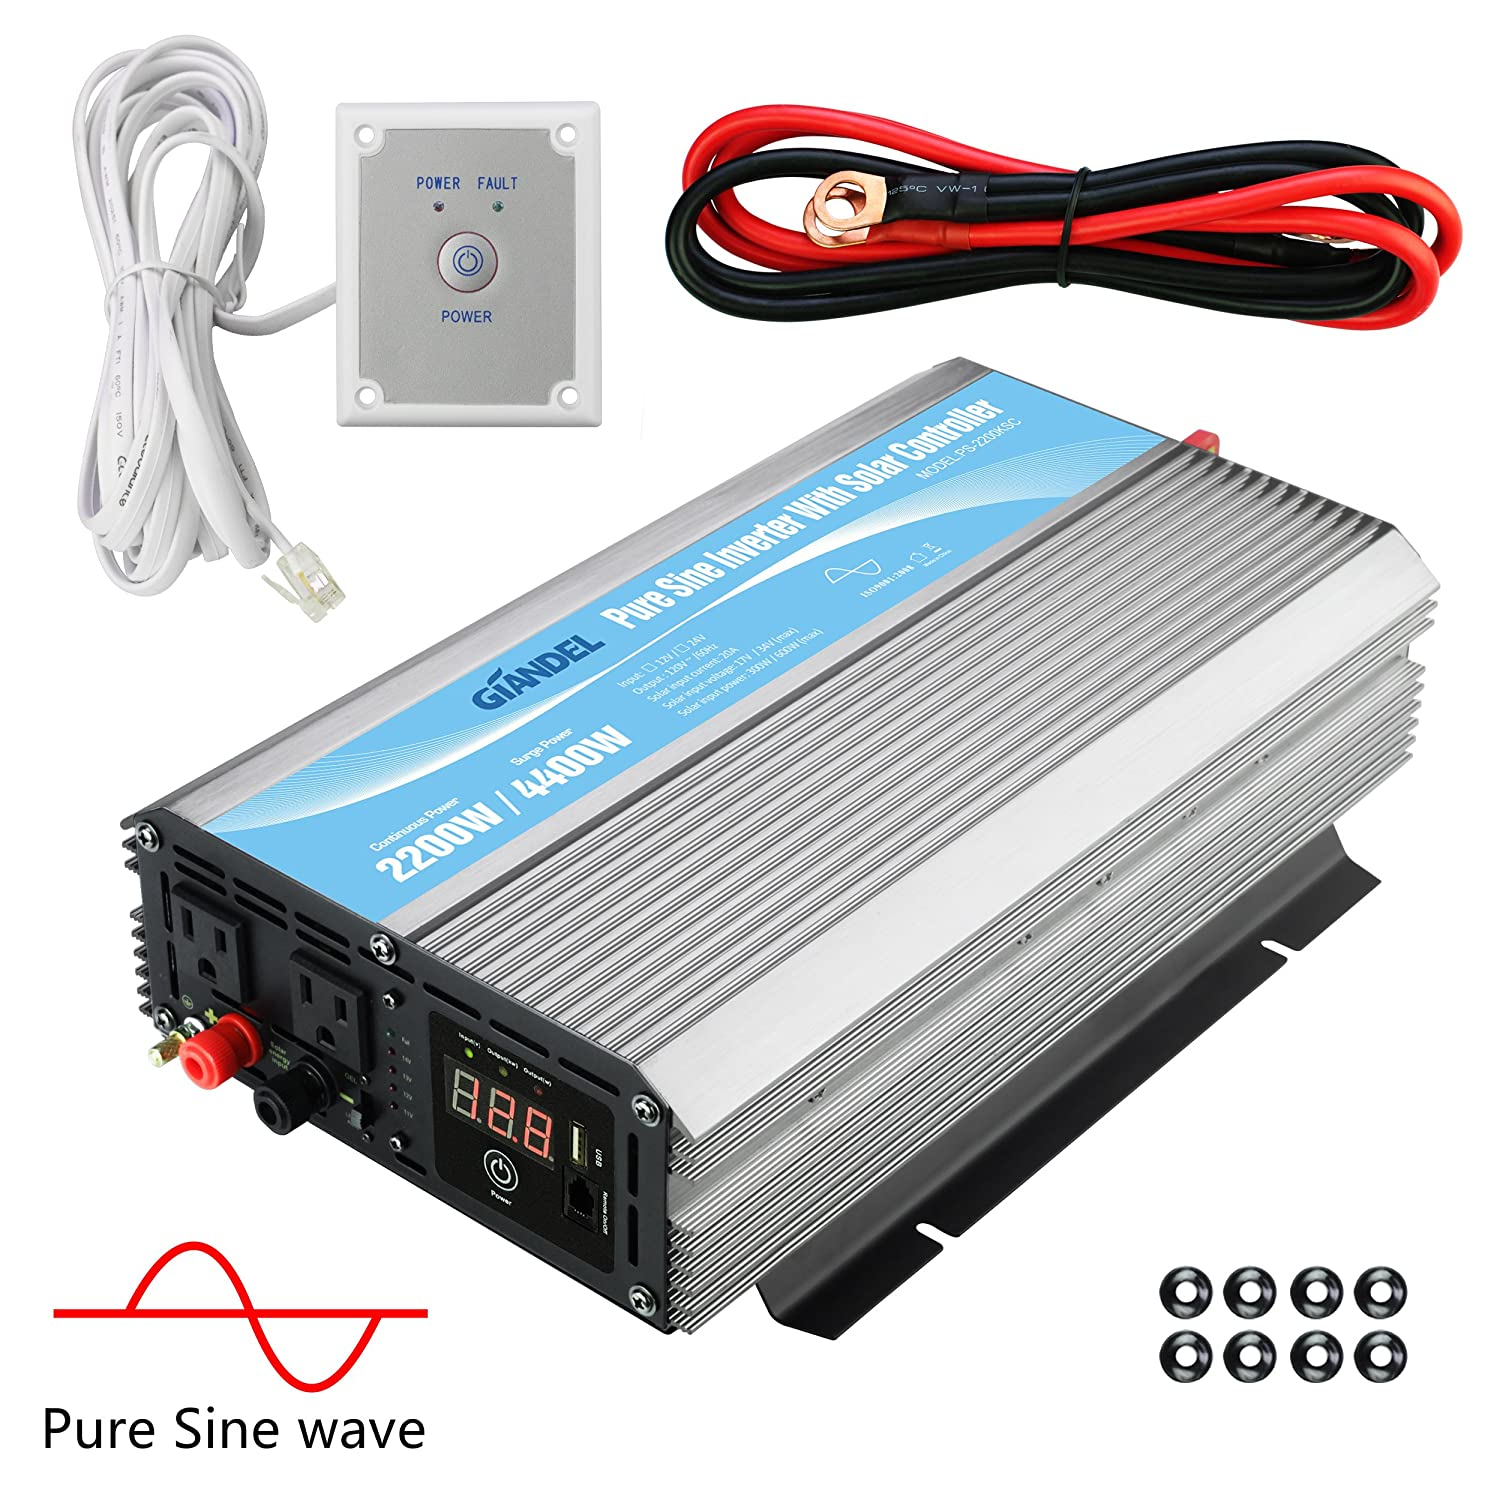 GIANDEL 2200W Pure Sine Wave Power Inverter 12V DC to 120V AC with 20A Solar Charge Control and Remote Control LED Display and Dual AC Outlets 1×2.4A USB Port for RV Truck Car Solar System